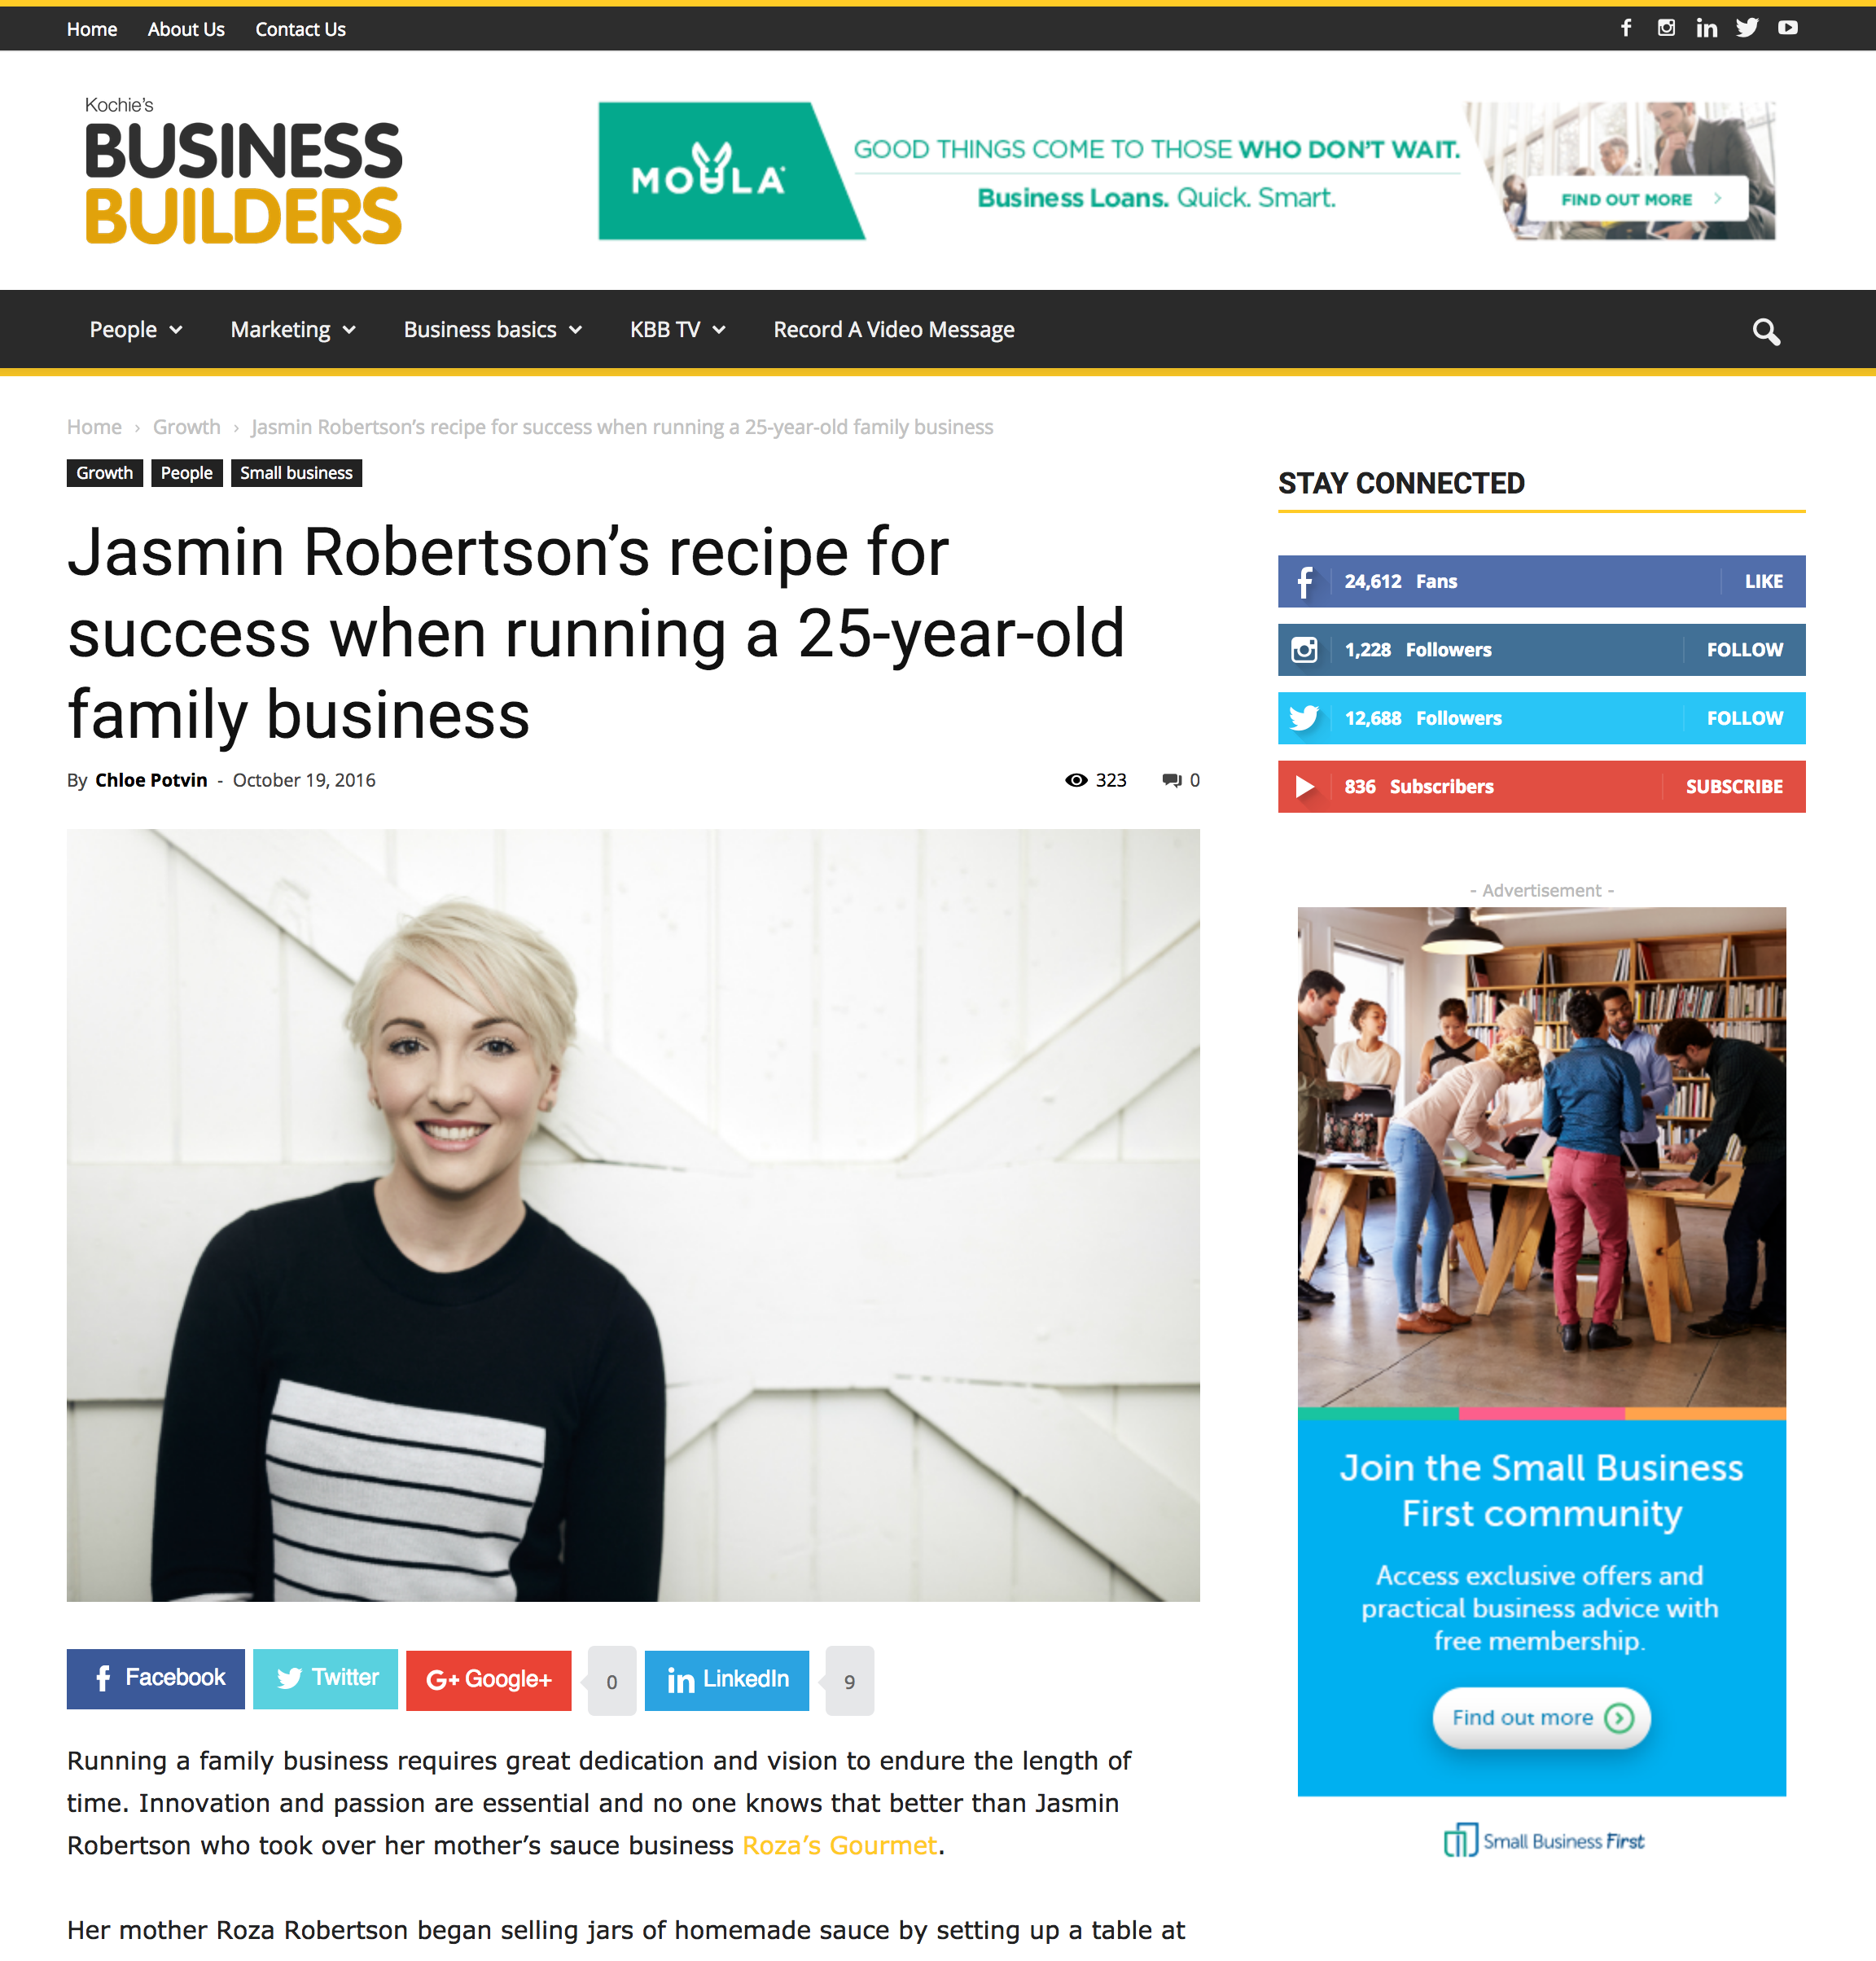 Jasmin Robertson's recipe for success when running a 25-year-old family business